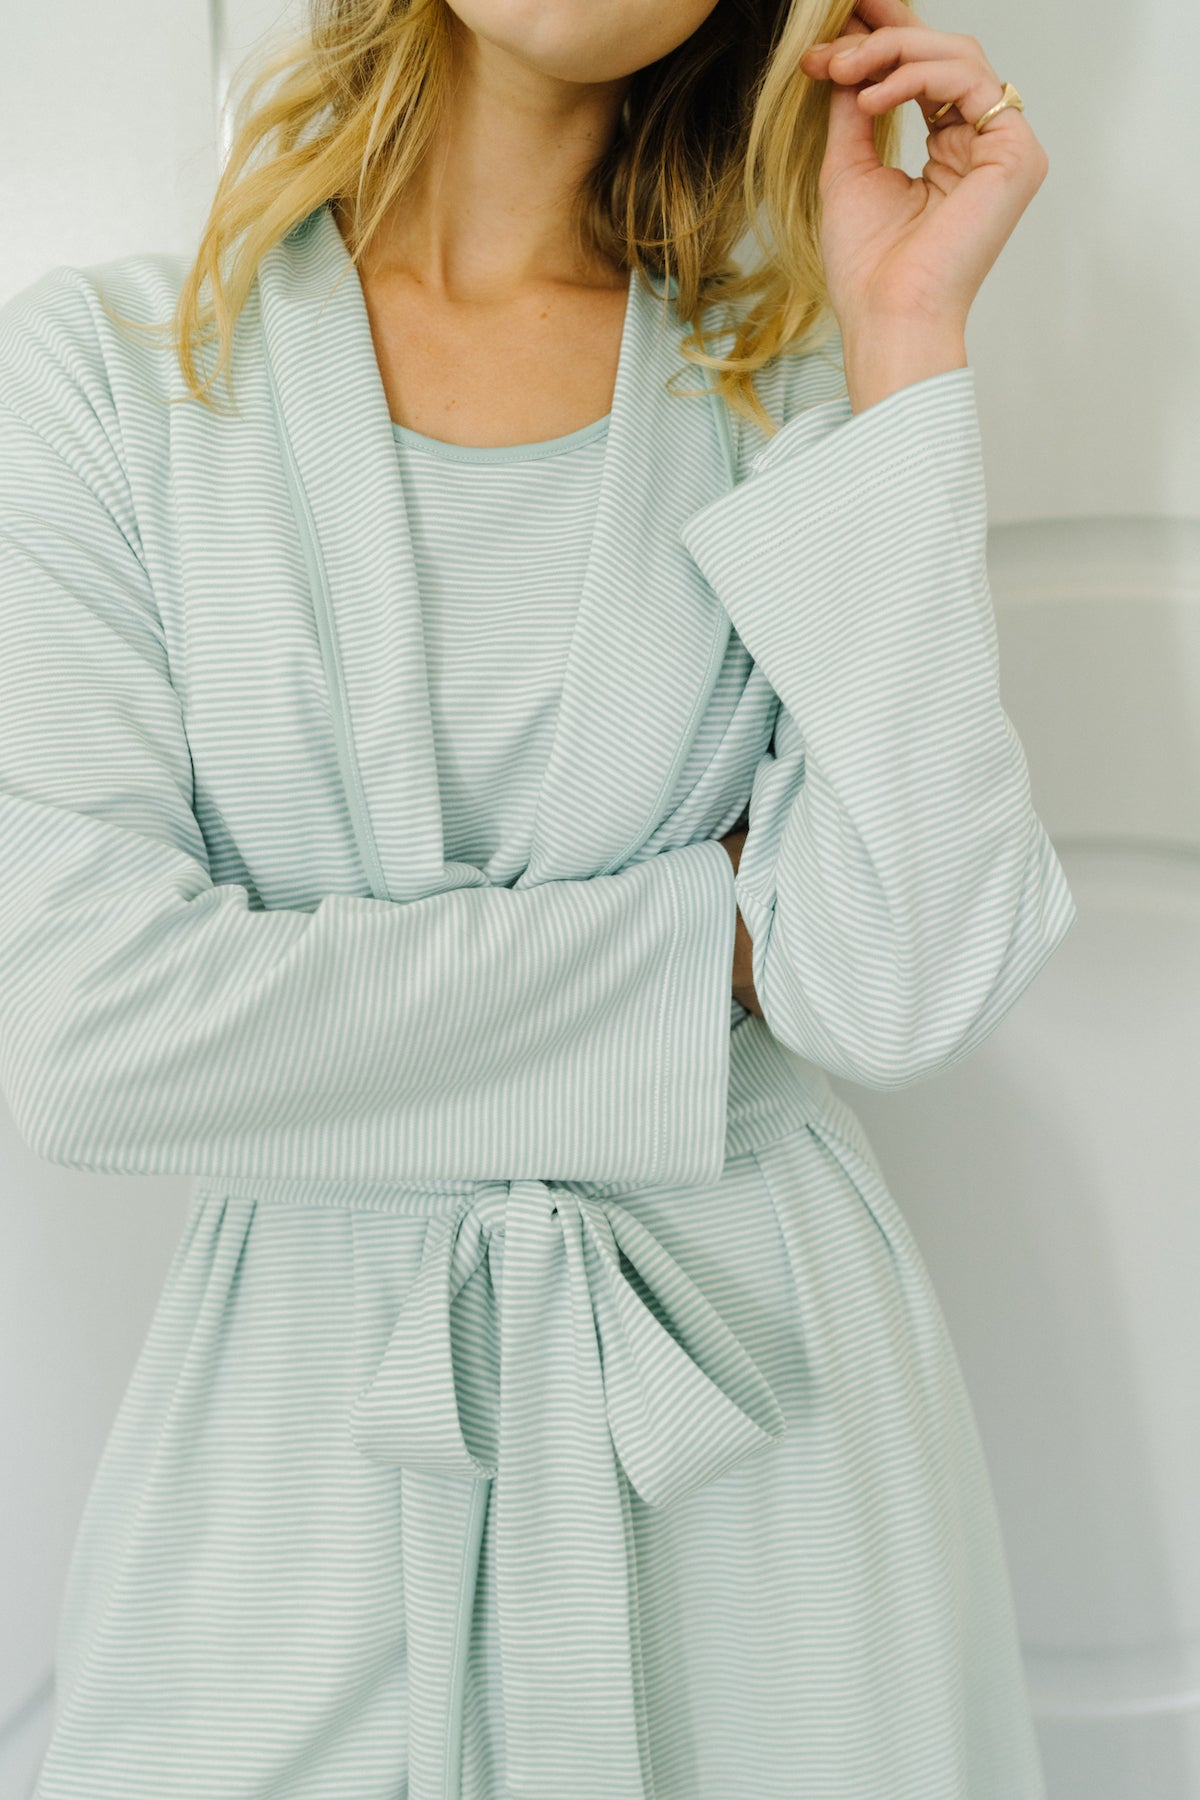 Pima Robe in Parisian Green